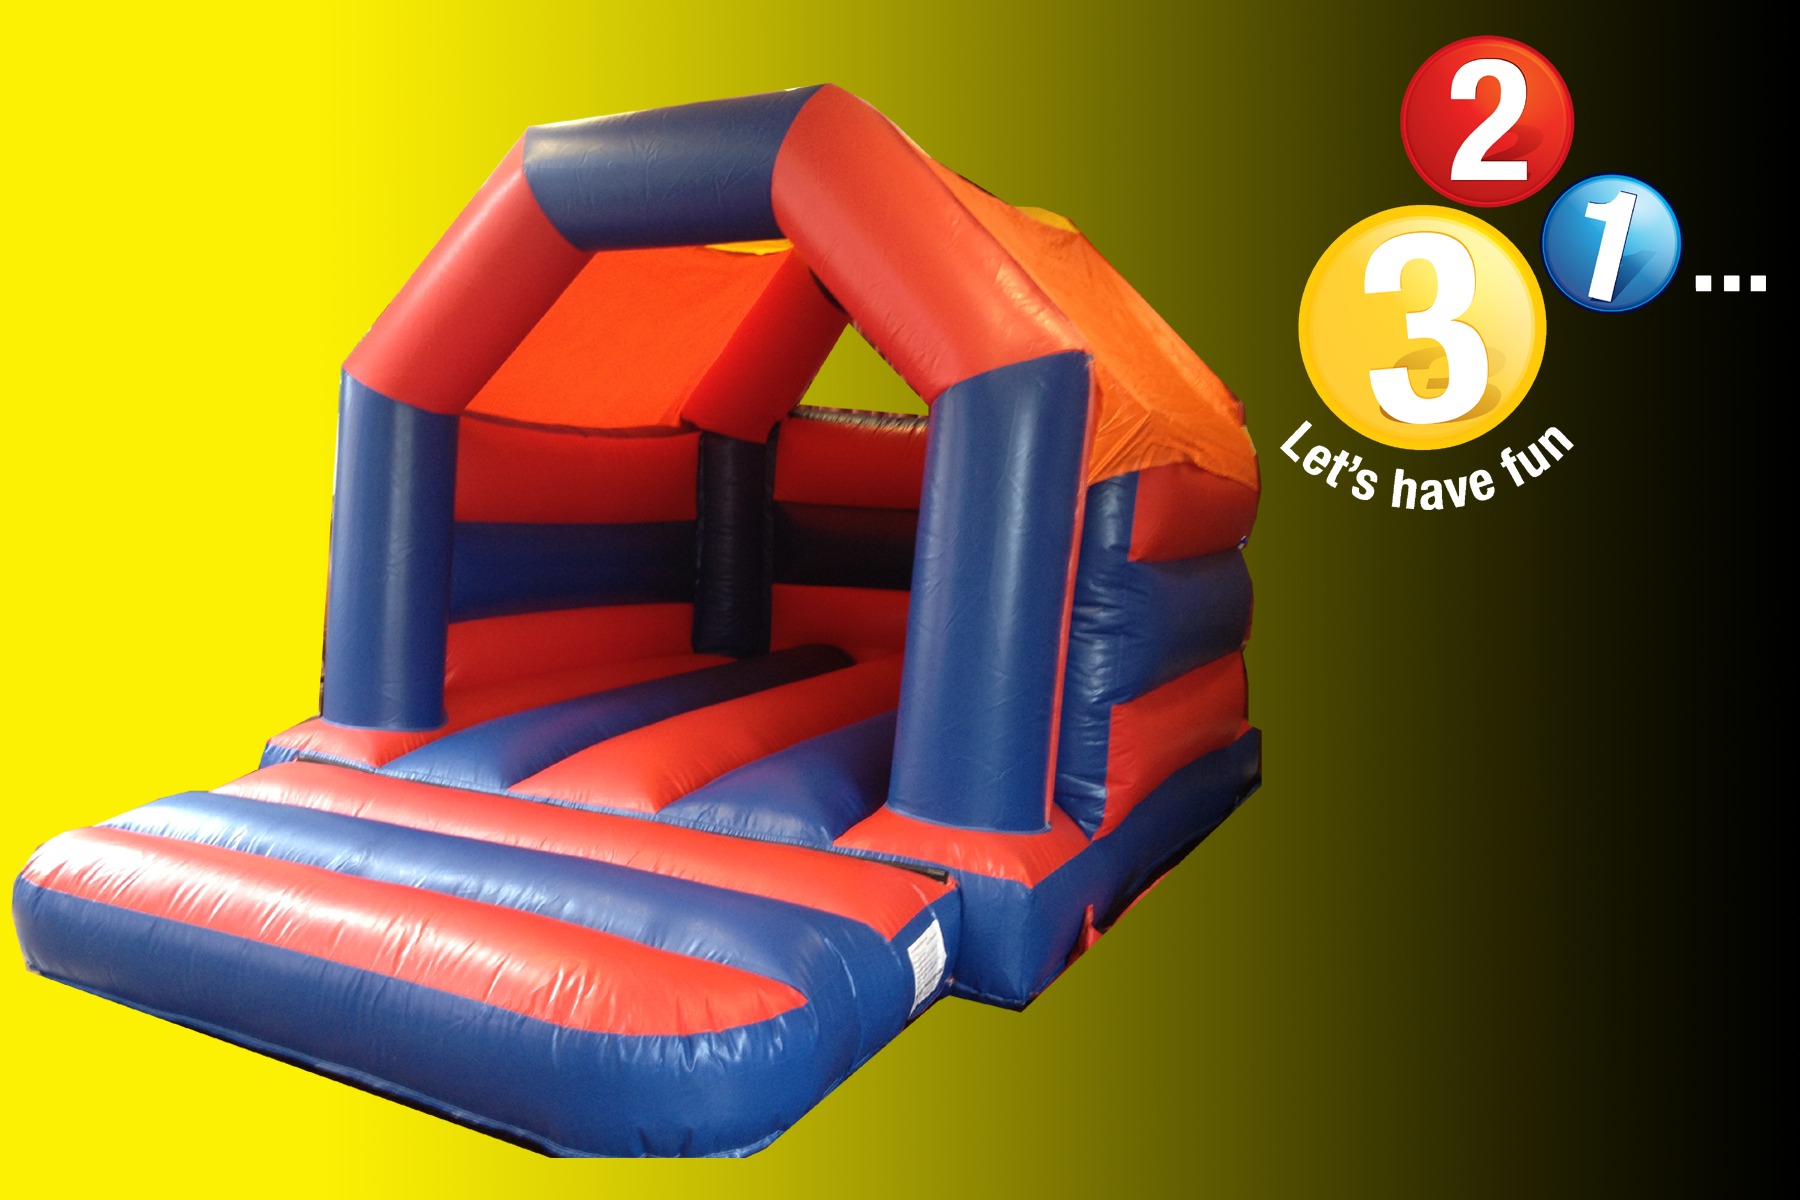 Childrens Party Offer...2 December 2014